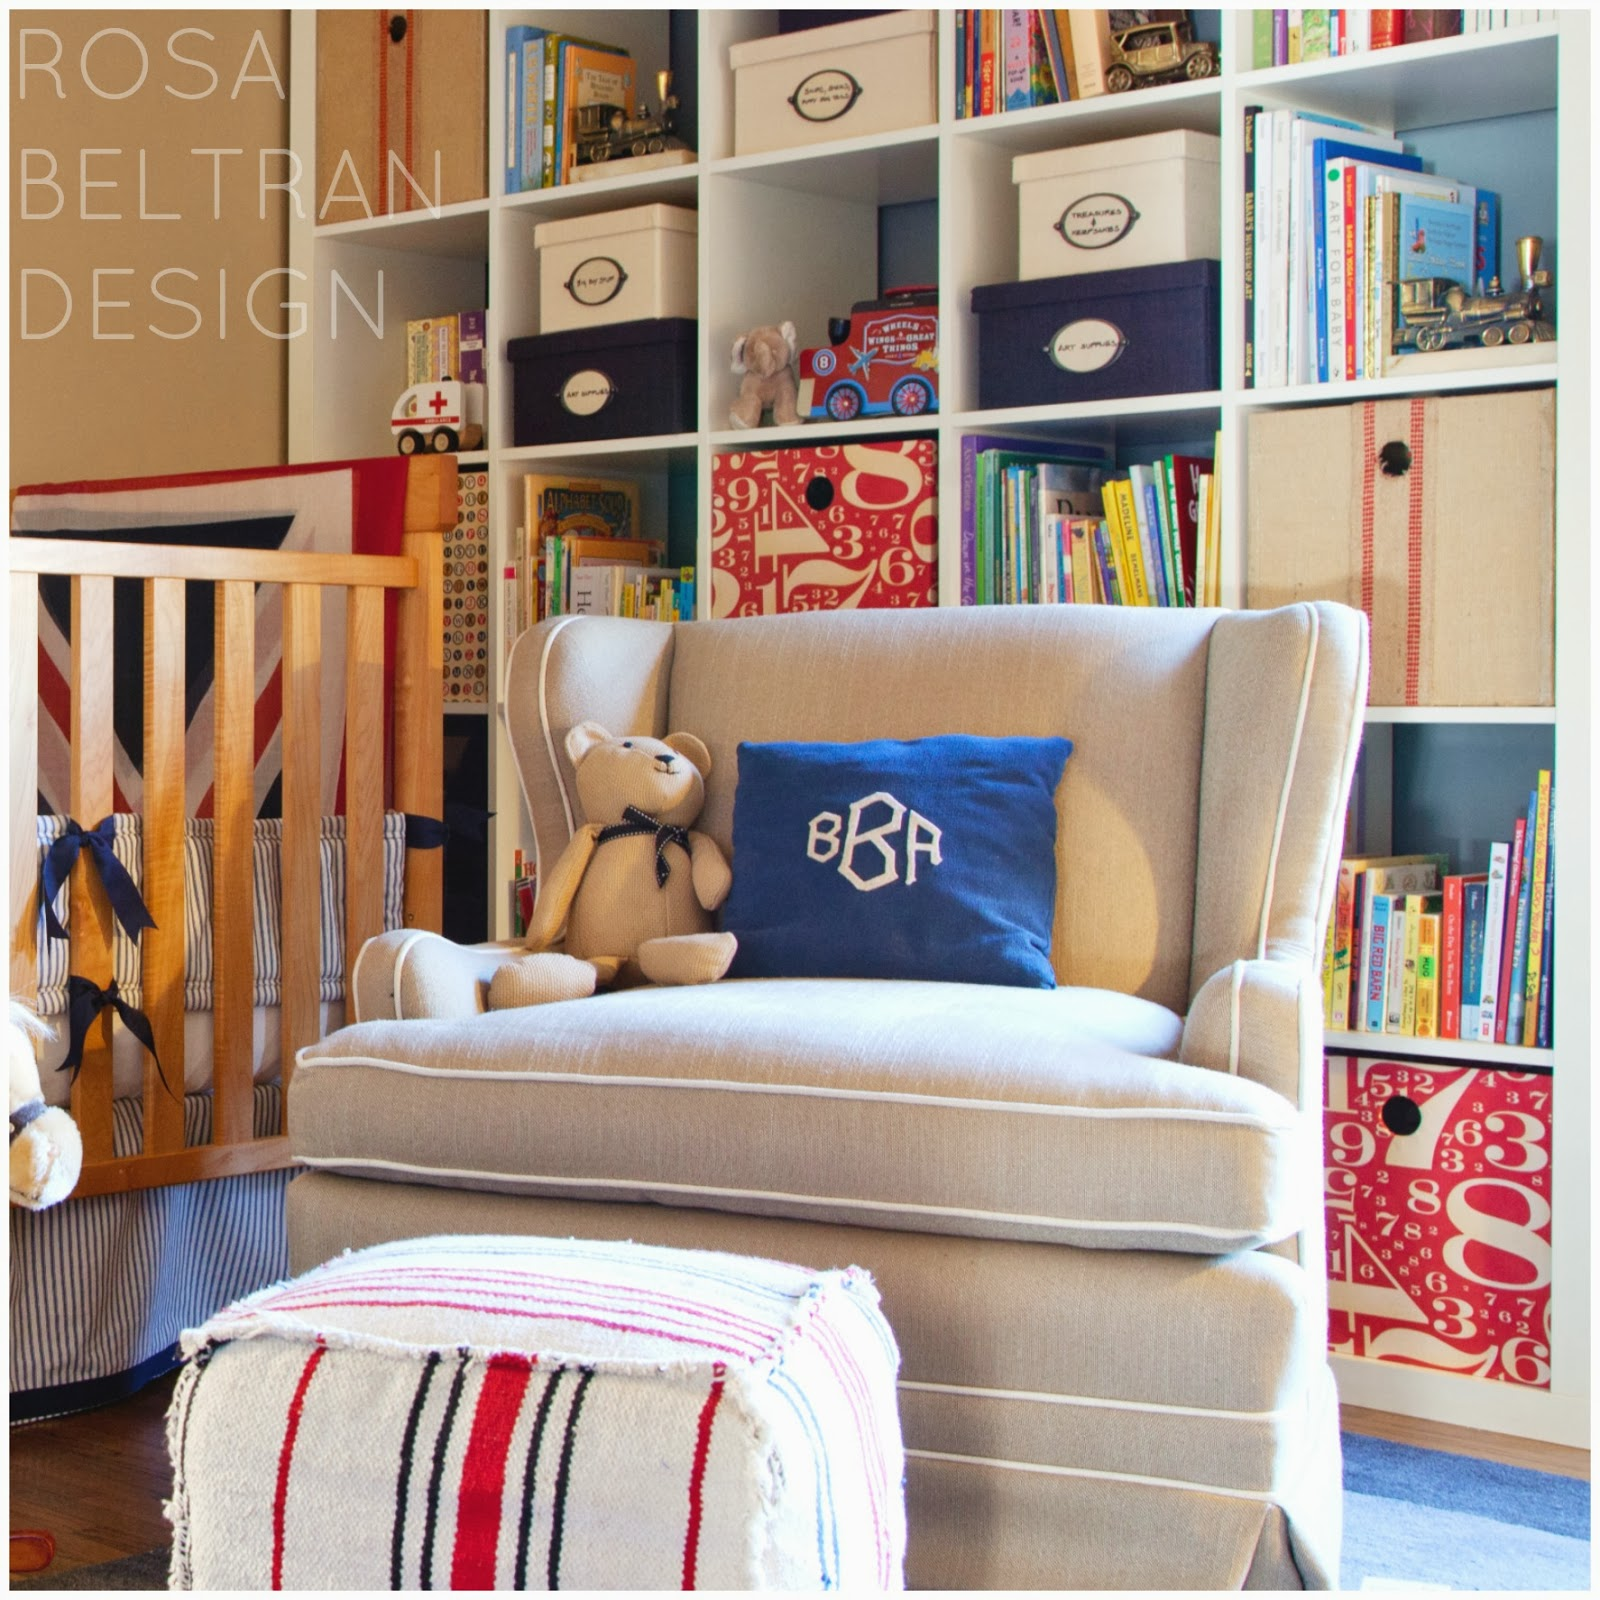 Tour the rest of benicio s quot little gent quot nursery here with complete